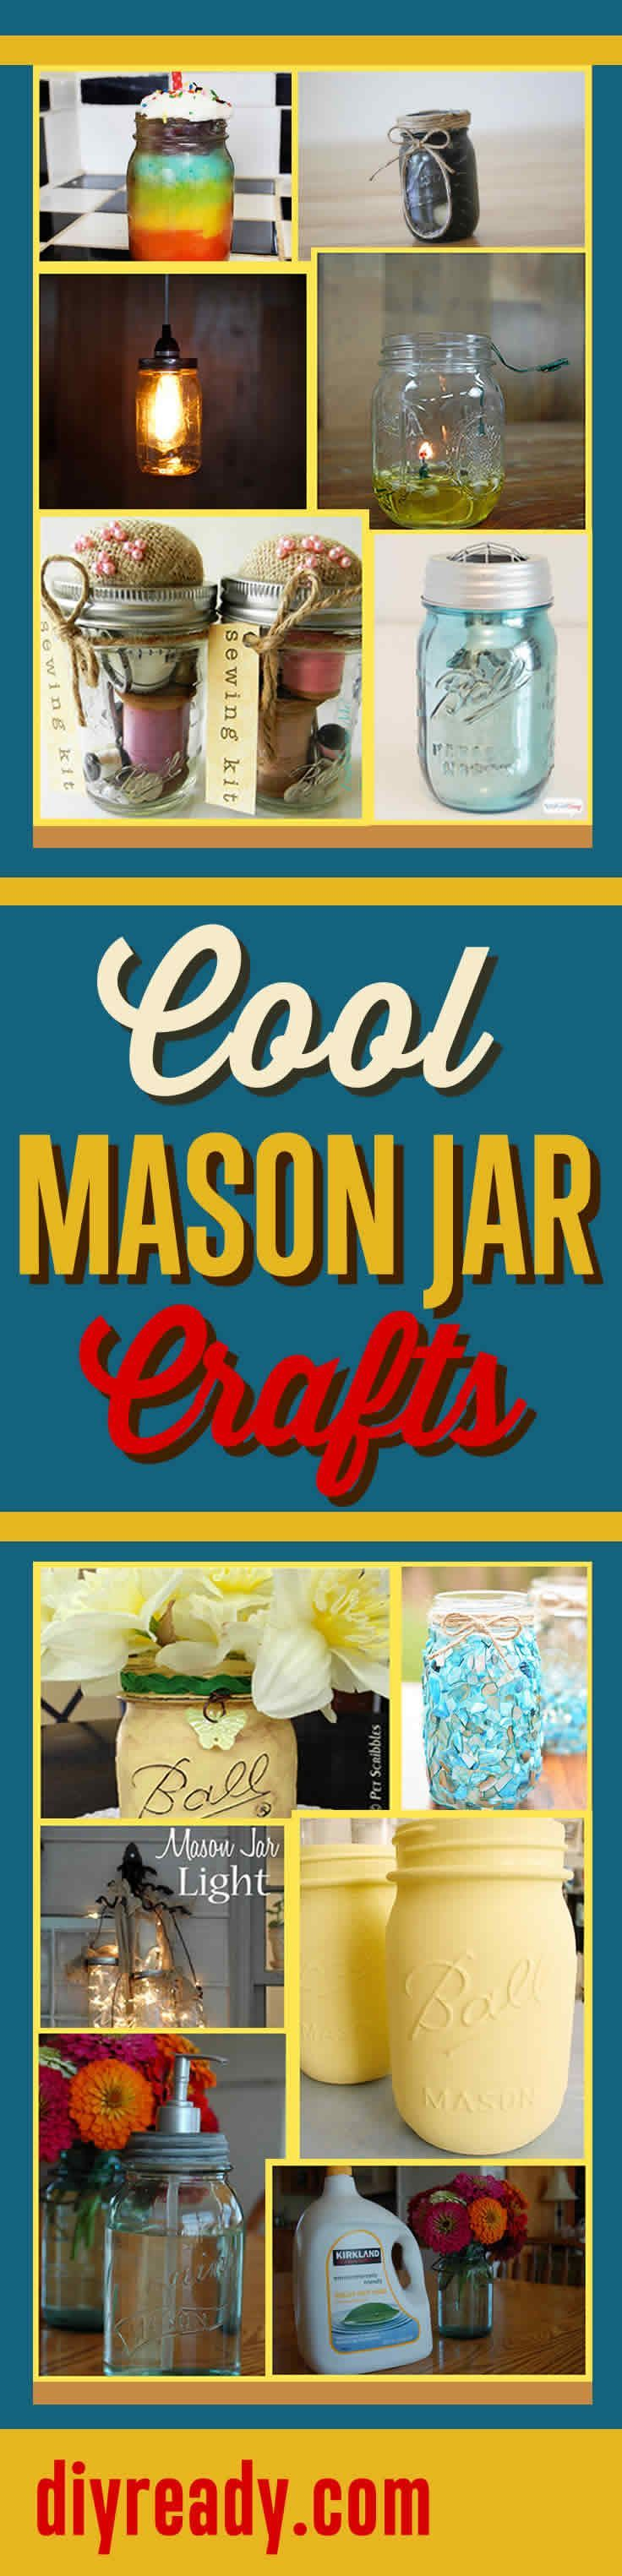 Cool Mason Jar Crafts Infographic | DIY Mason Jar Craft Ideas and DIY Projects by DIY Ready  http://diyready.com/mason-jar-crafts-cool-projects-with-mason-jars/